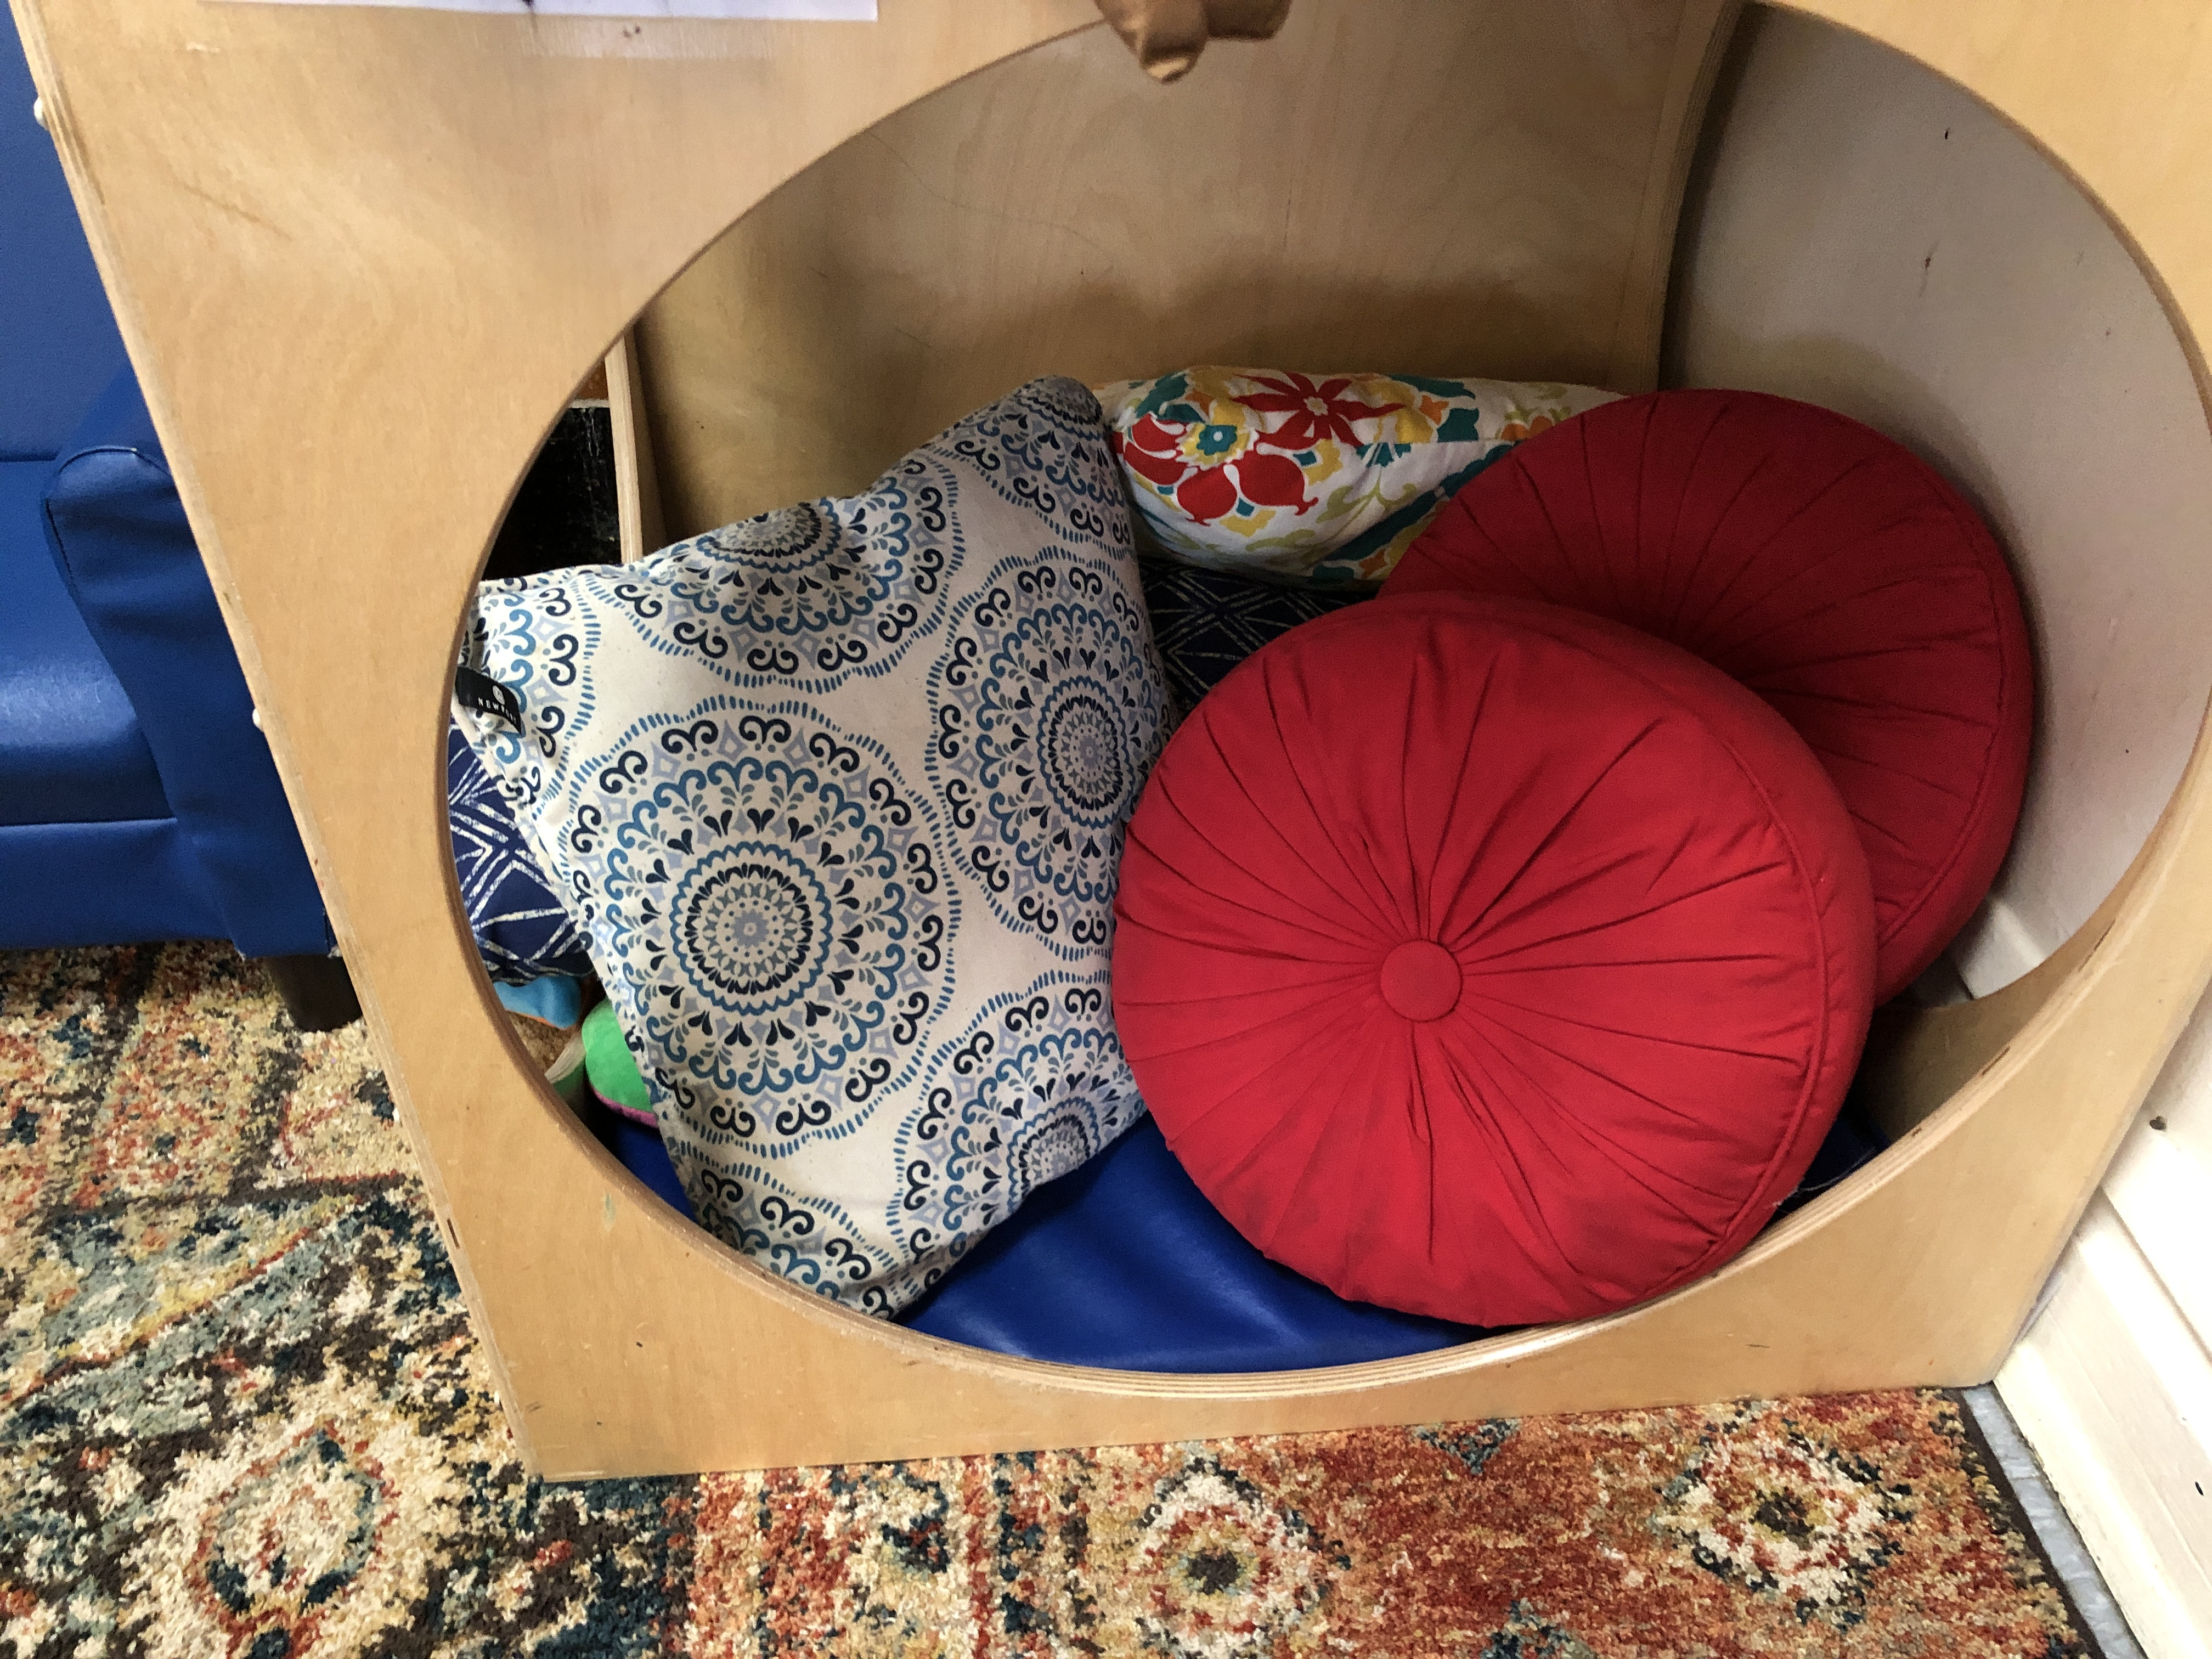 Using pillows in a small, private space in a classroom